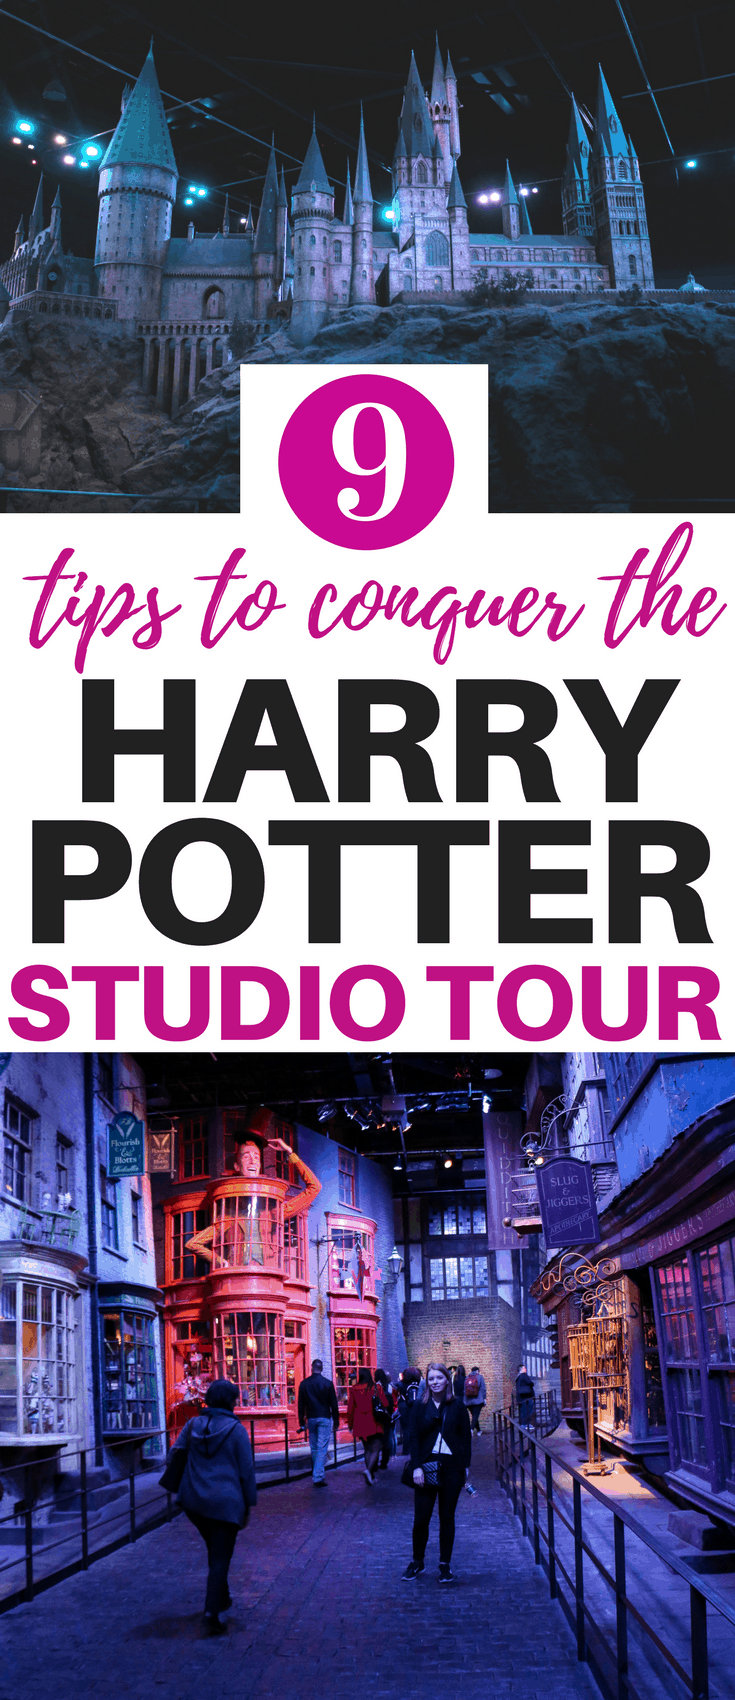 The Warner Bros Studio Tour: The Making of Harry Potter is a must-do for any Harry Potter fan while visiting London. This ultimate guide gives you travel tips, souvenir advice and more. Add the Harry Potter studio tour to your London bucket list - you won't regret it with my tips to conquer the tour!